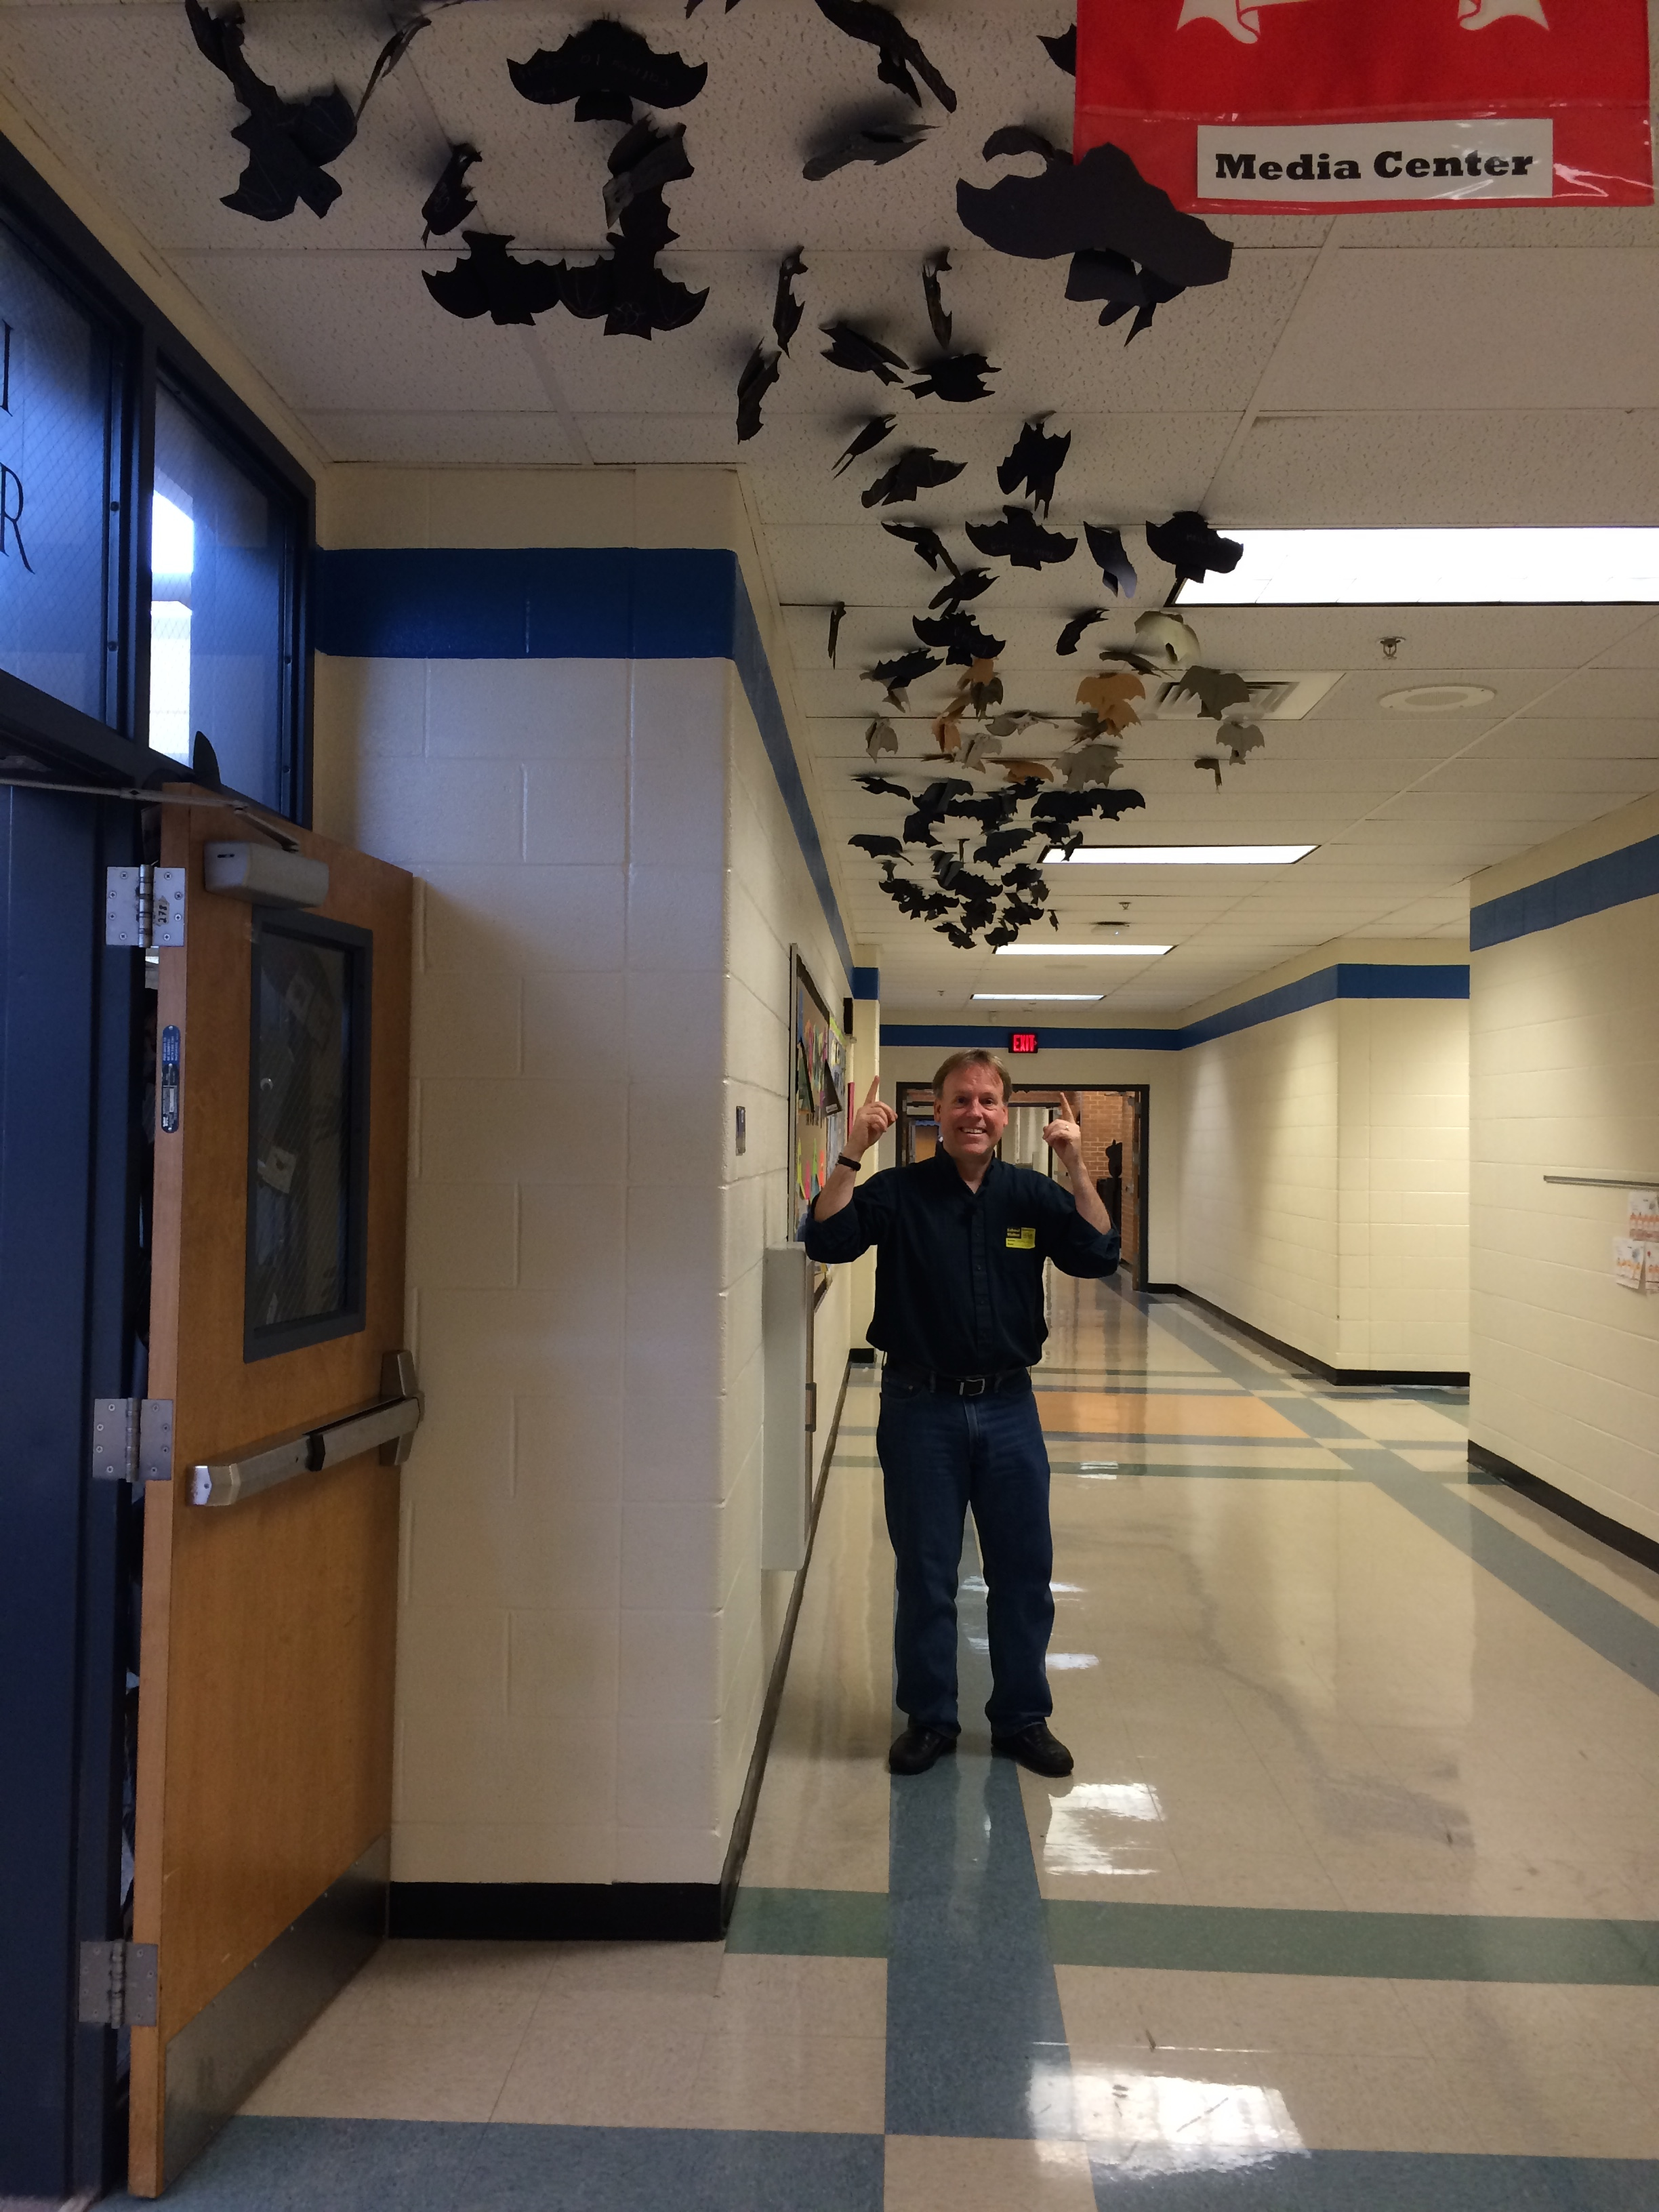 Pitner Elementary, in Kennesaw, GA, created a parade of bats leading to the Media Center!